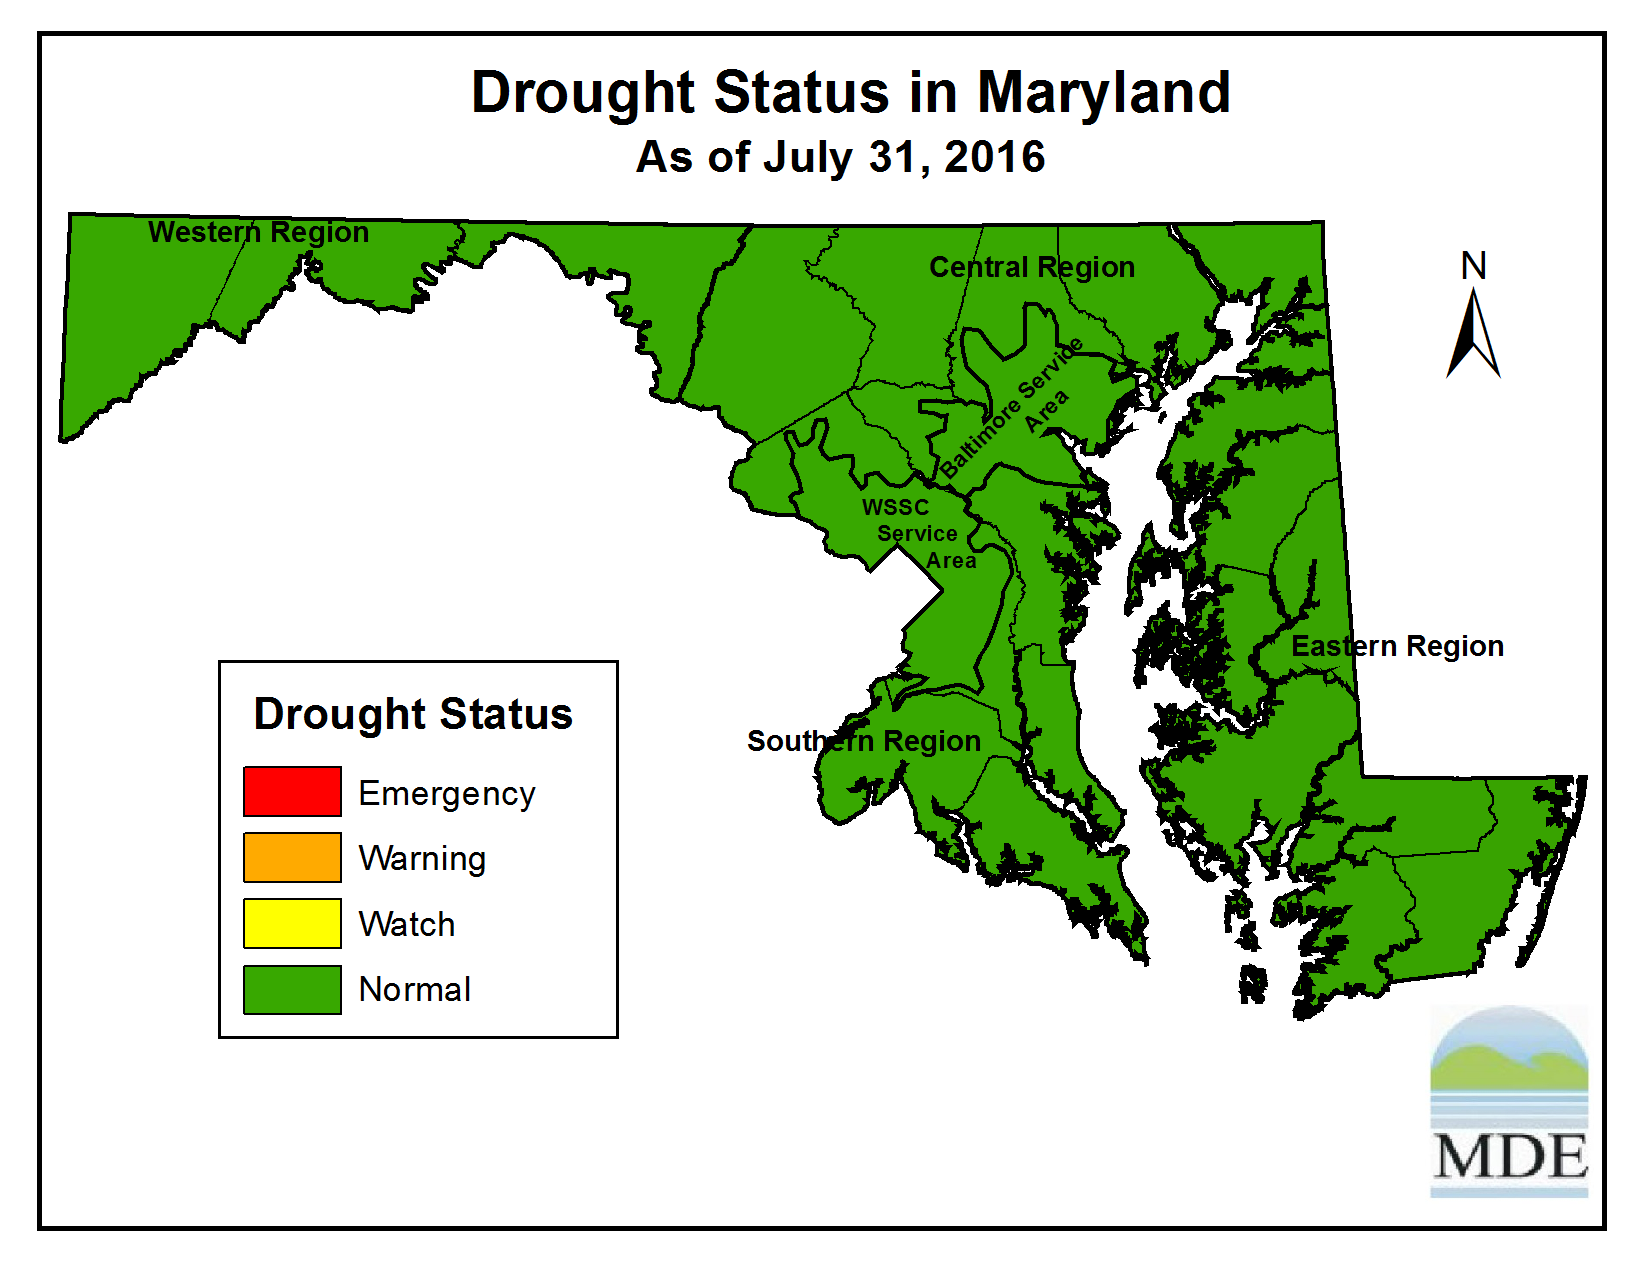 Drought Status as of July 31, 2016